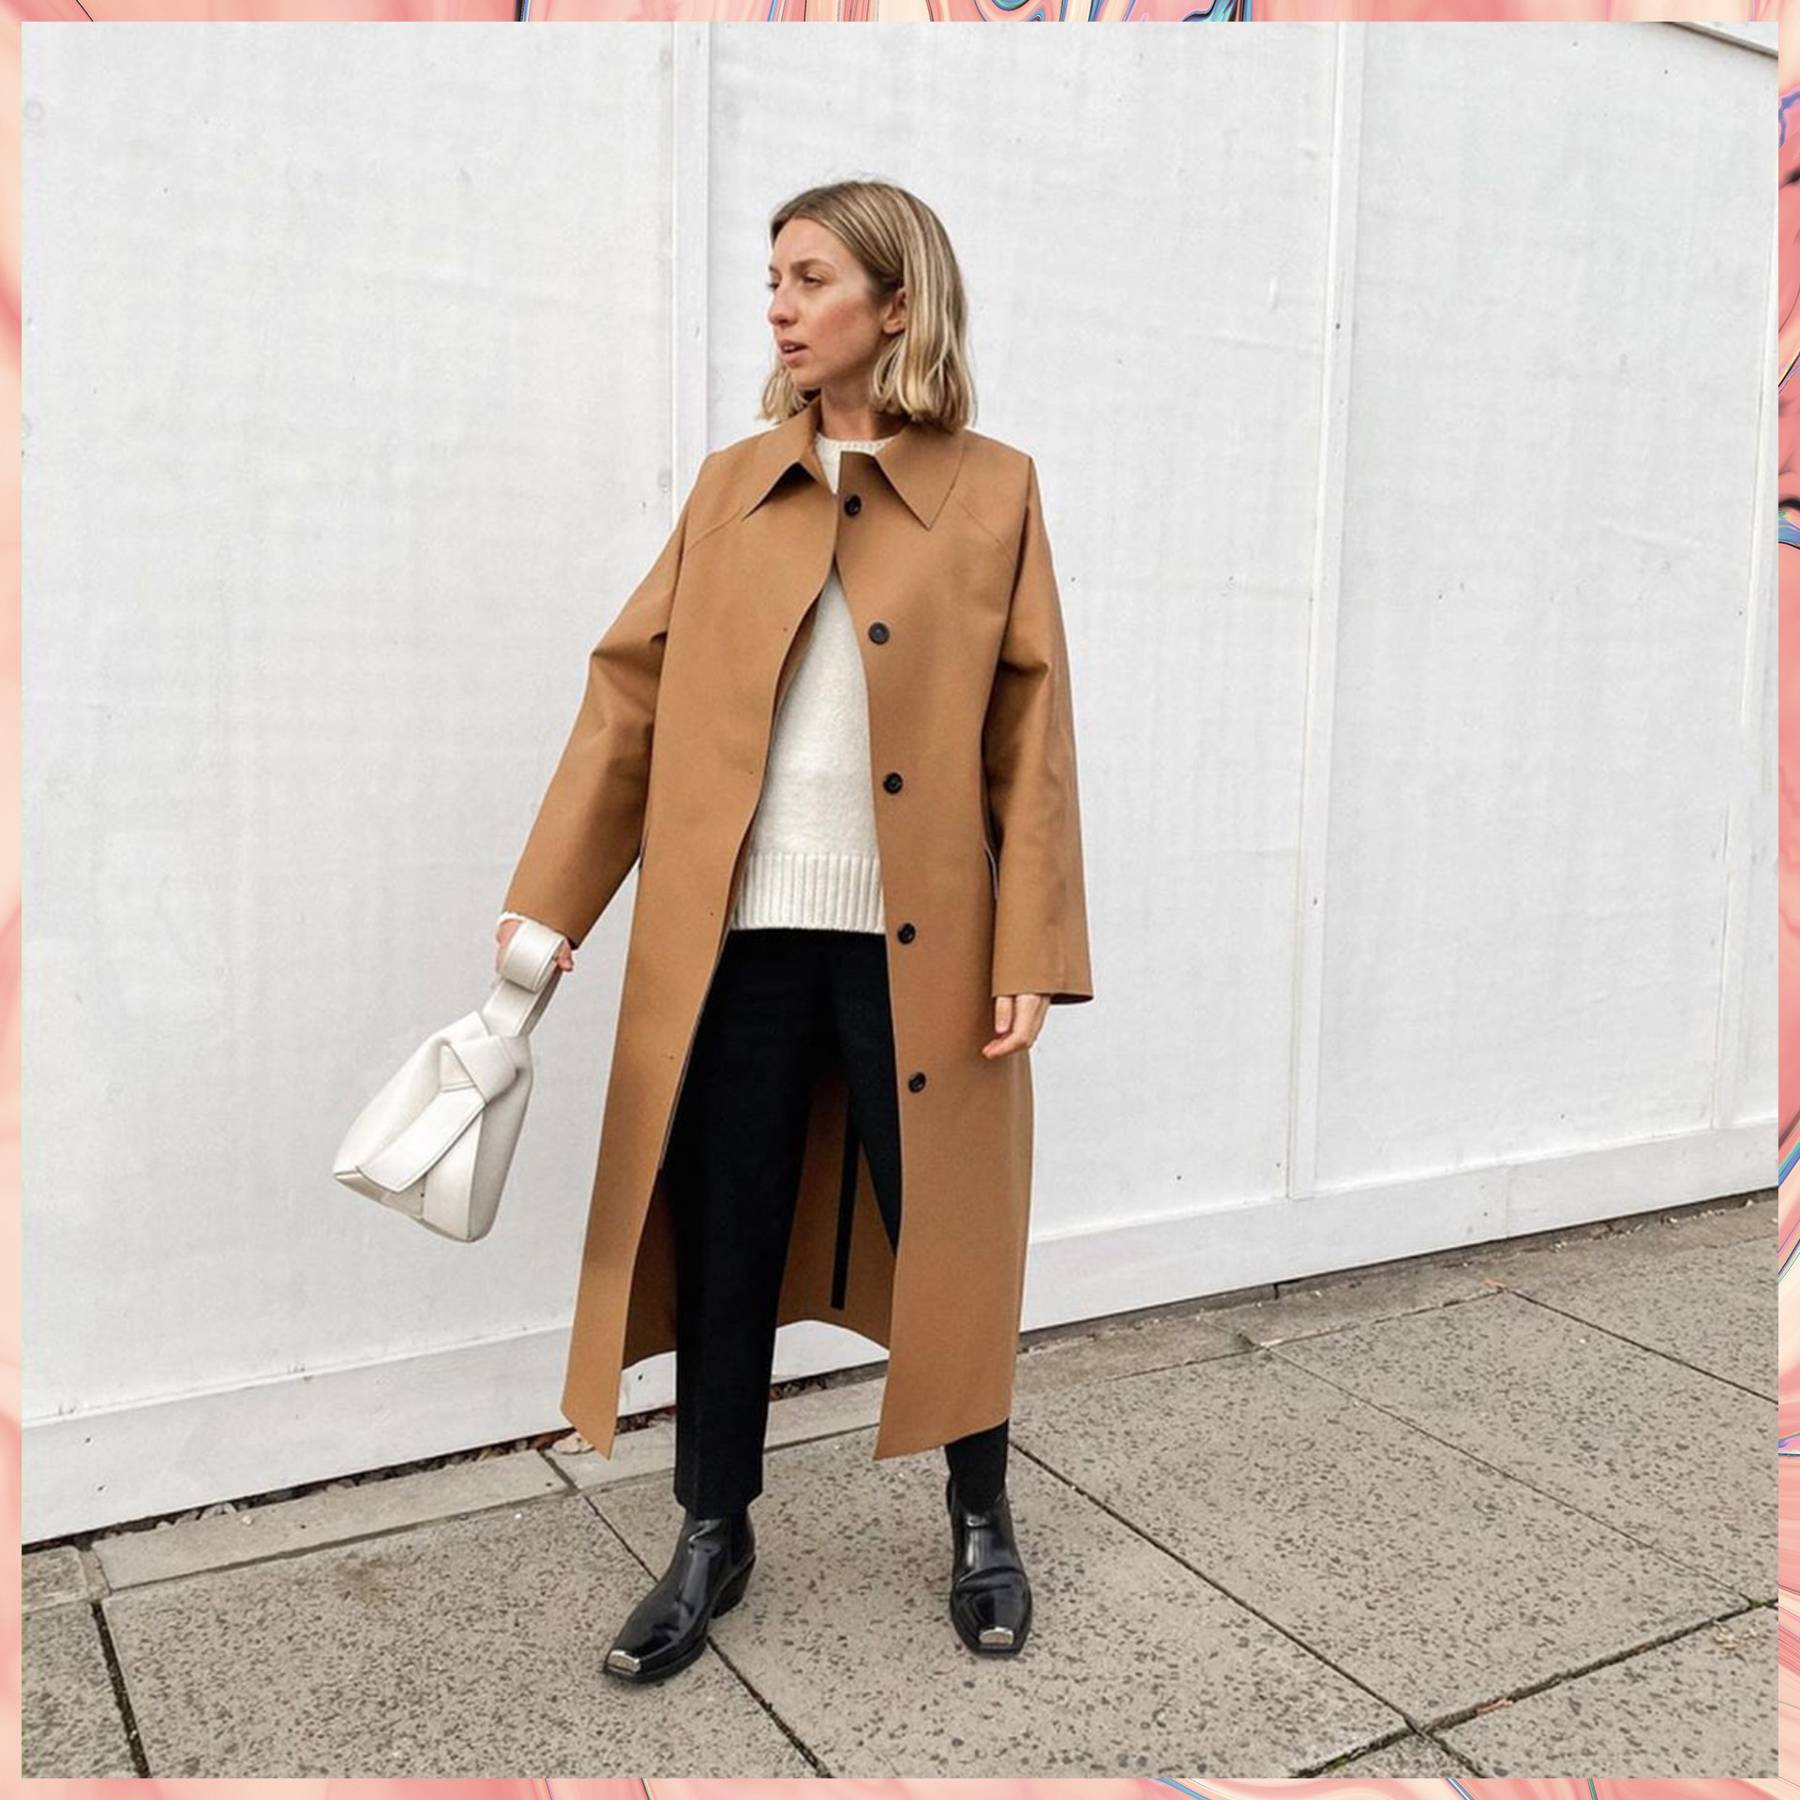 Influencers are obsessed with this outerwear trend for autumn